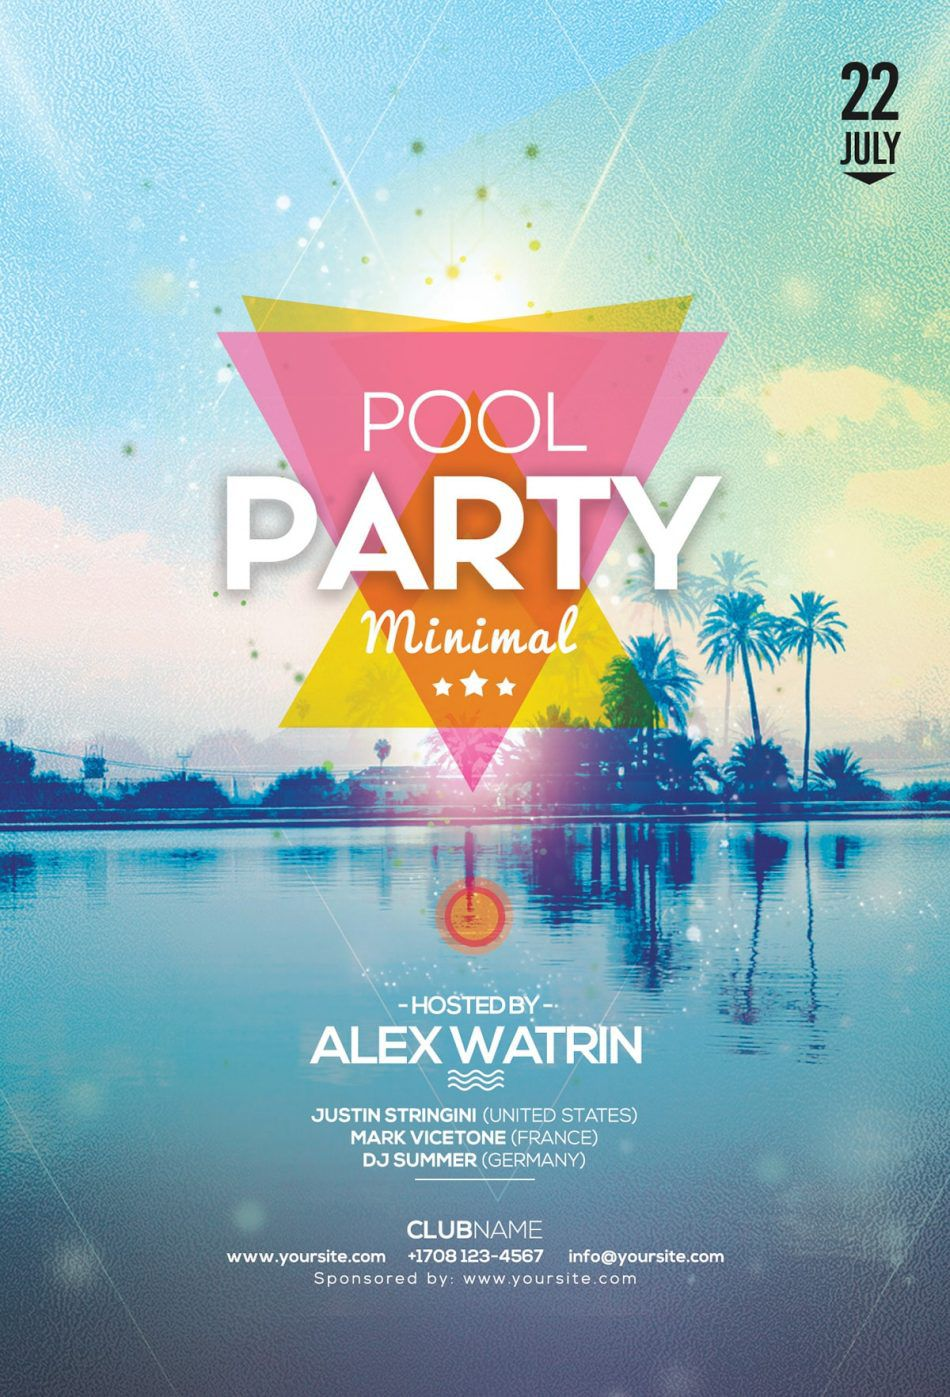 004 Awful Free Pool Party Flyer Template Psd Example  PhotoshopFull